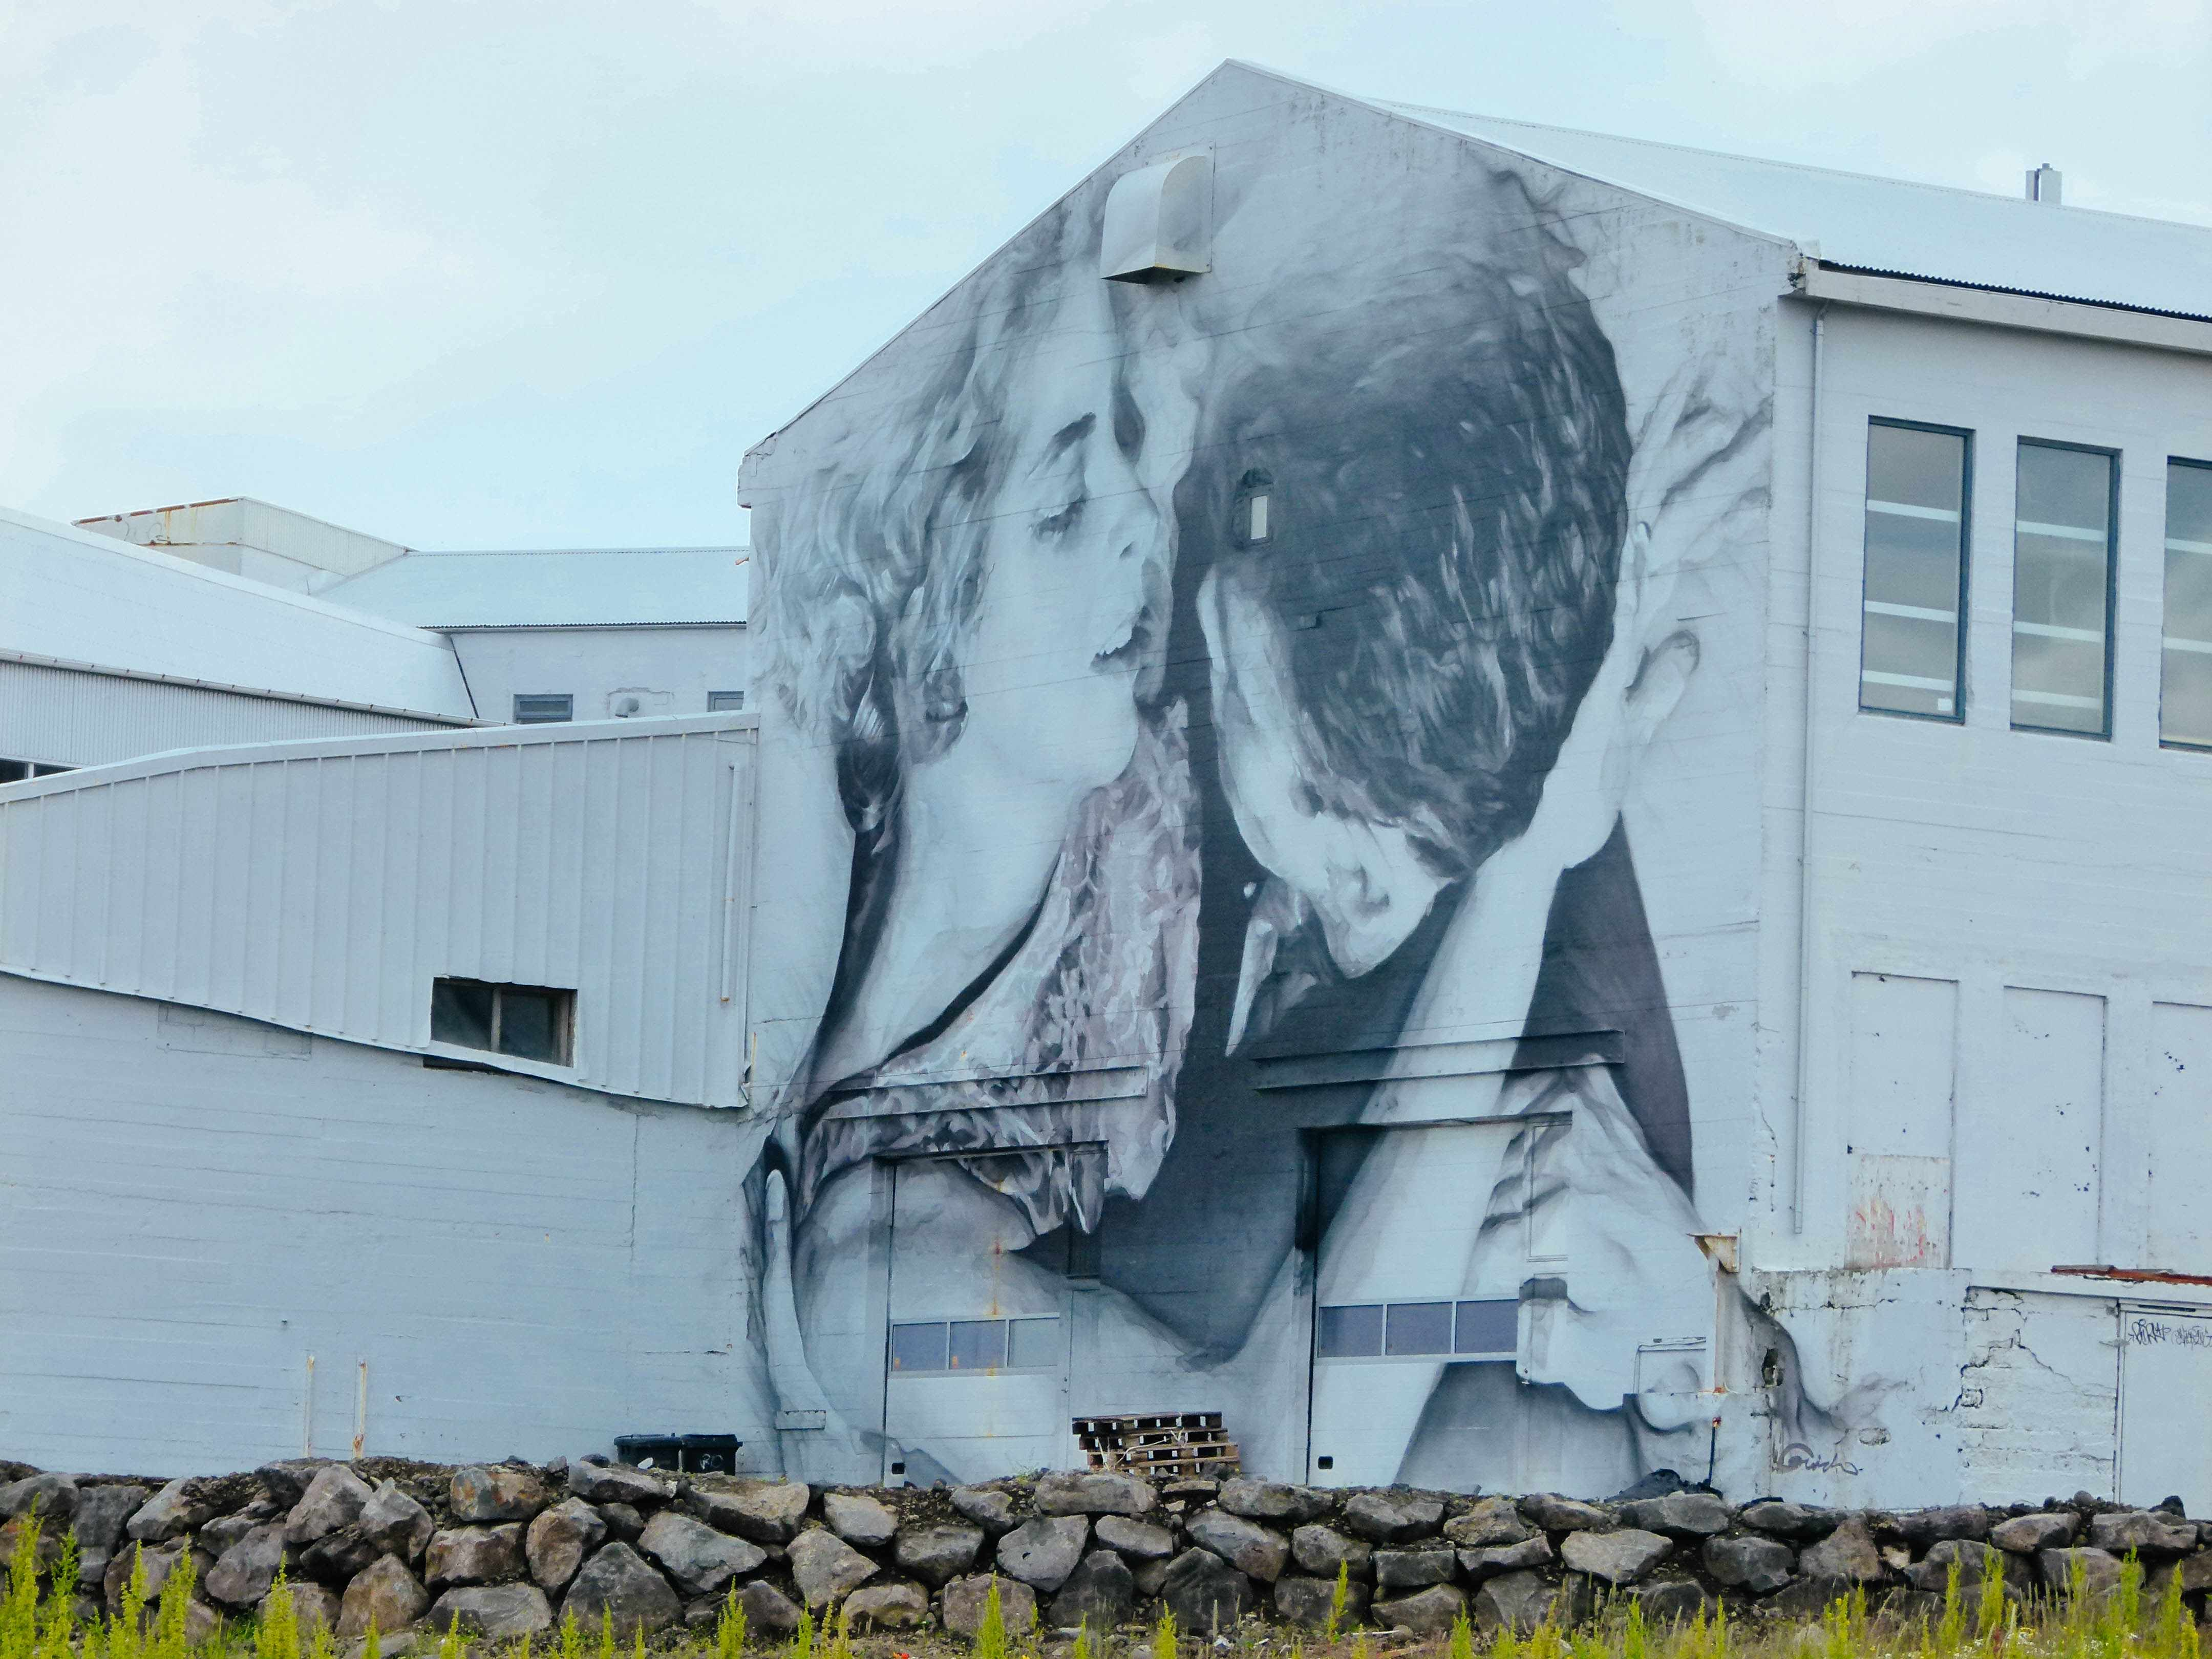 untitled 1 of 1 12 1024x768 - What to See and Do in Reykjavik if You Only Got 24 hours